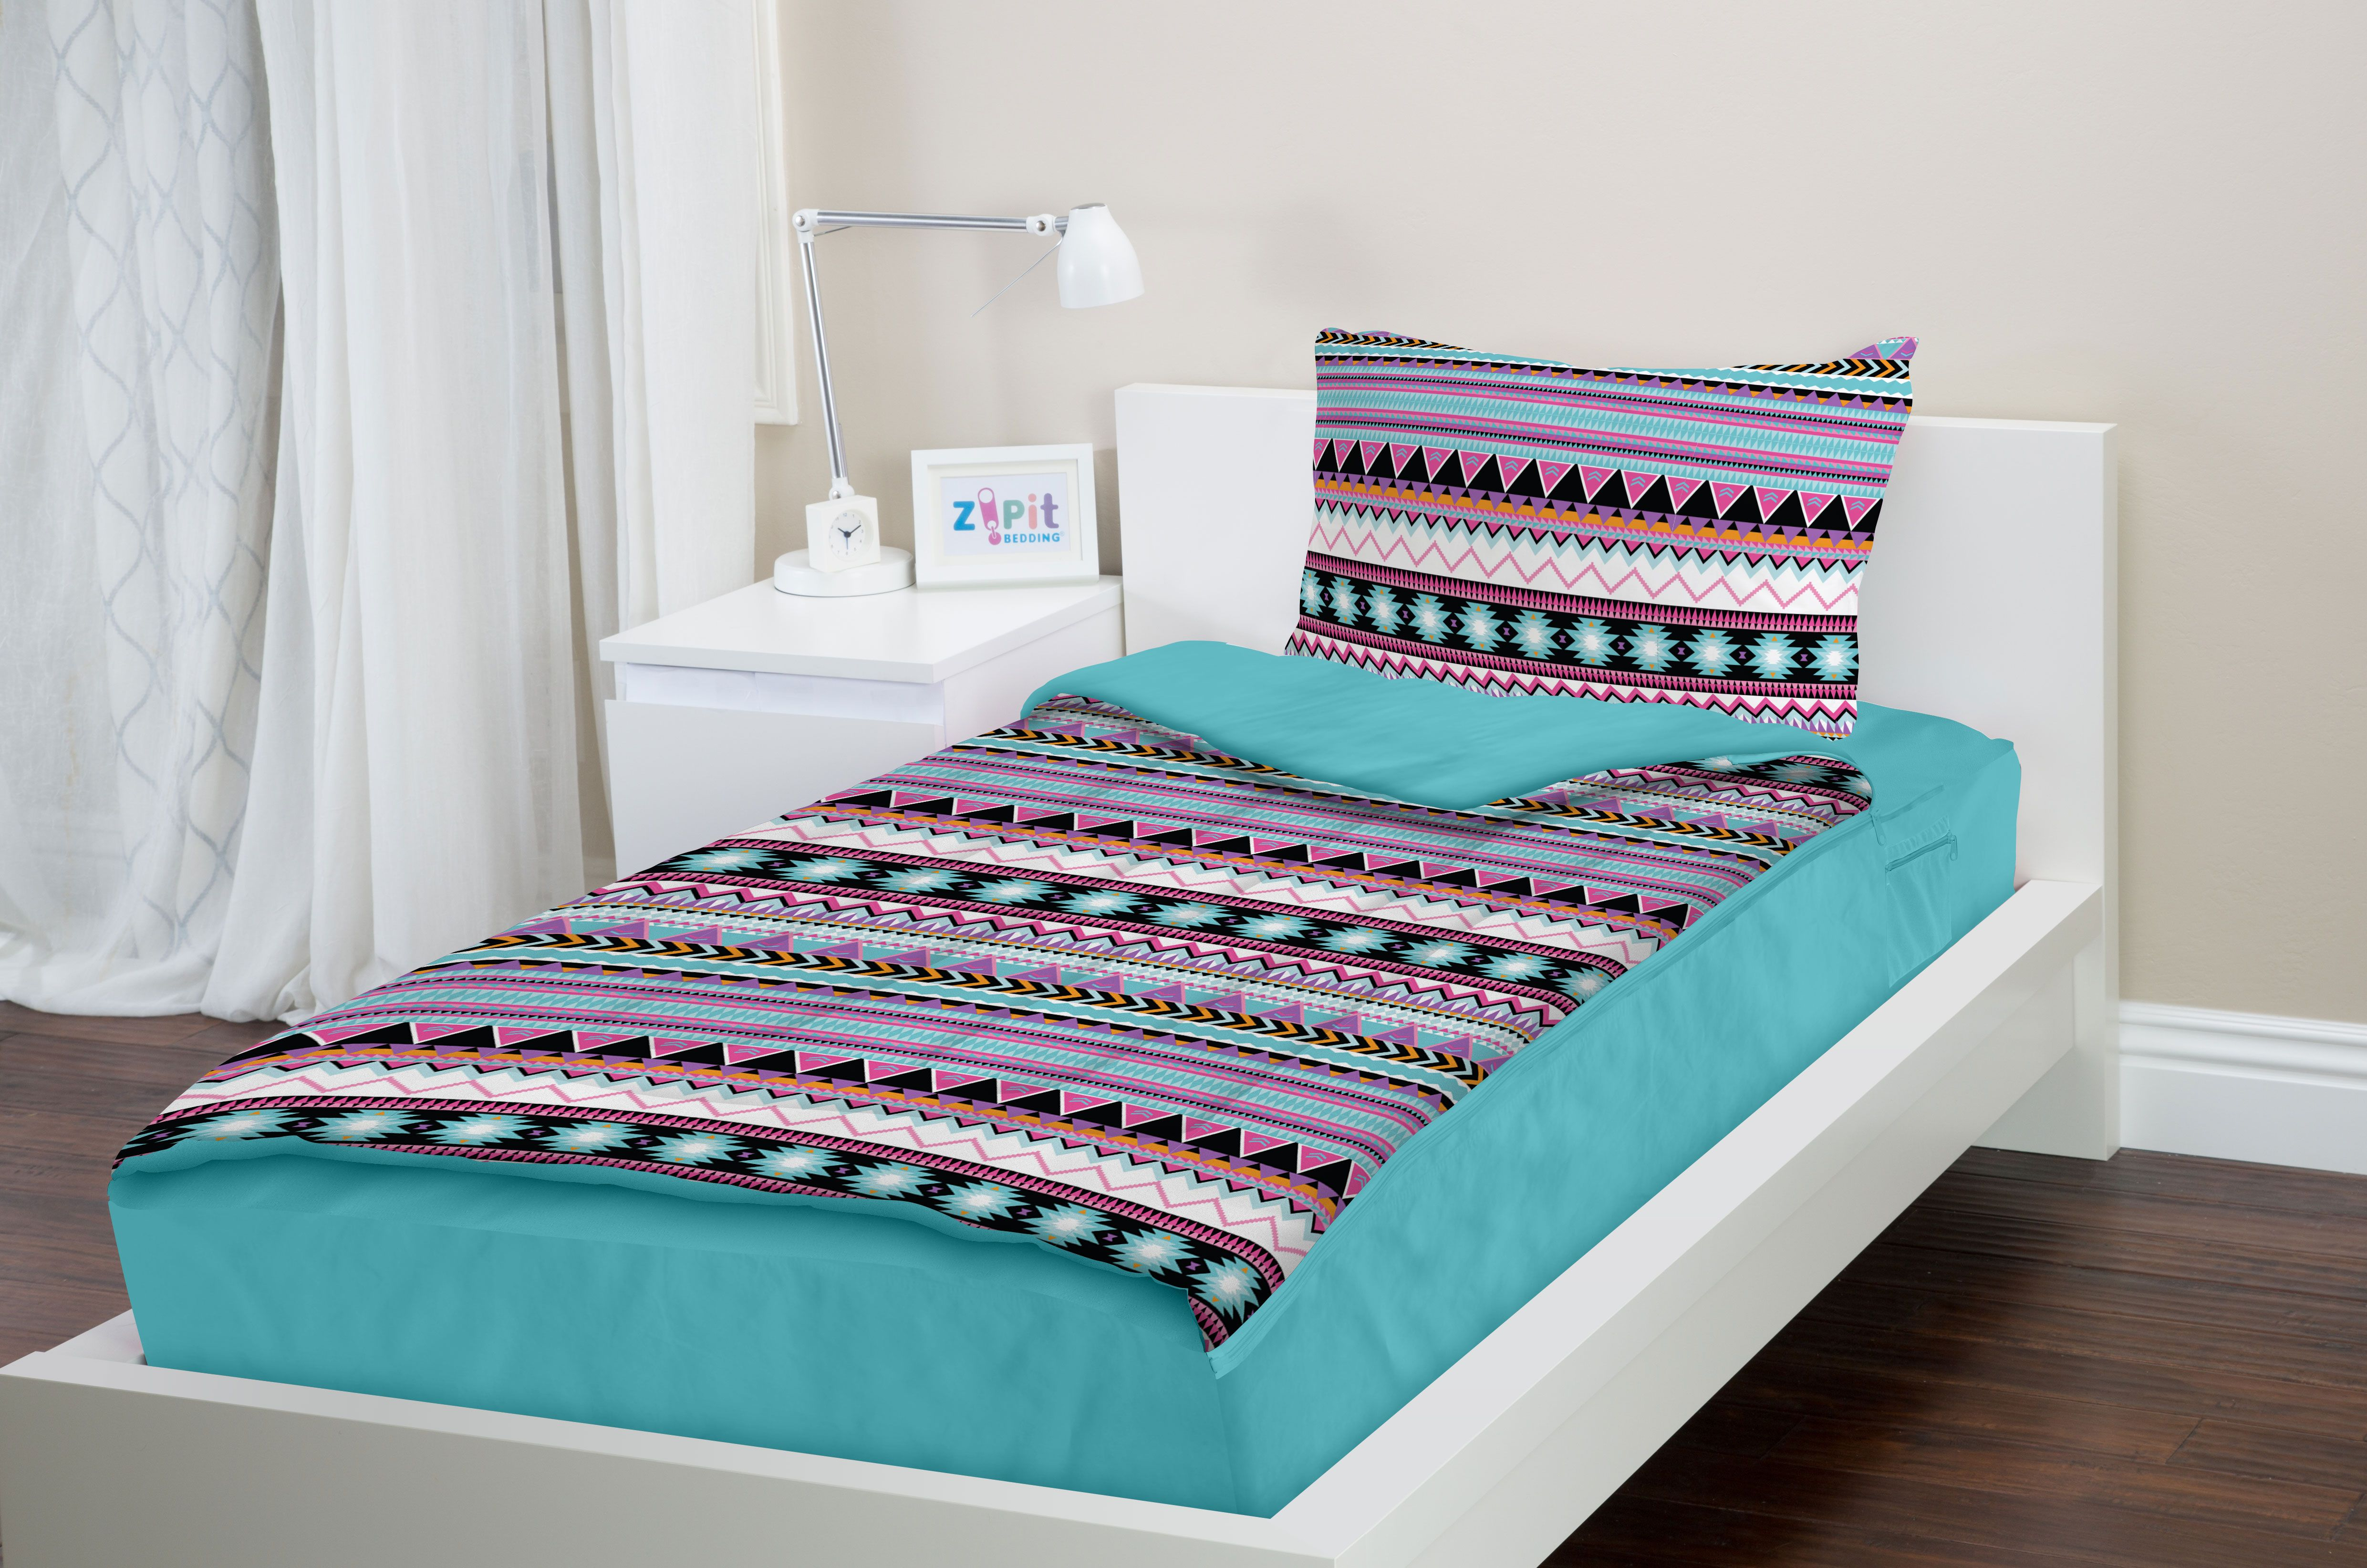 Zipit Bedding Set - Zip-Up Your Sheets and Comforter Like a Sleeping Bag